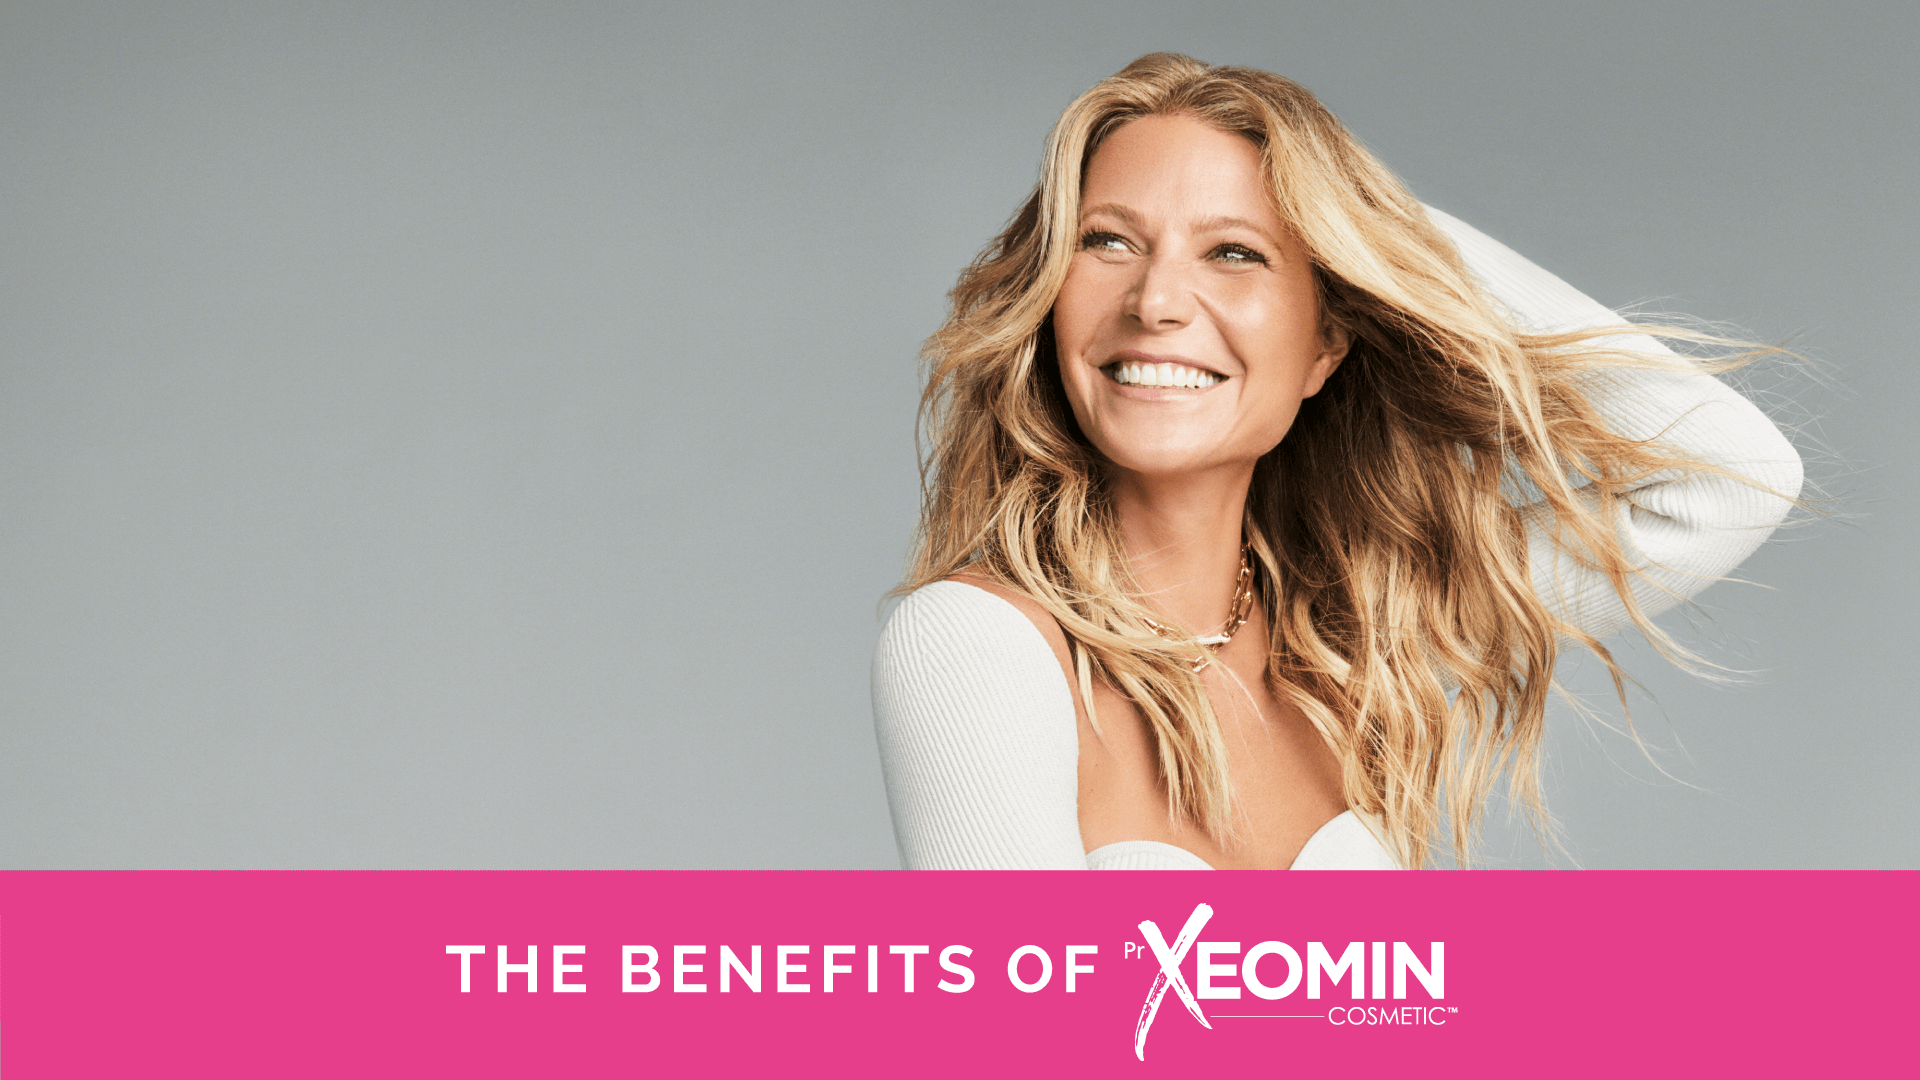 The Benefits of Xeomin